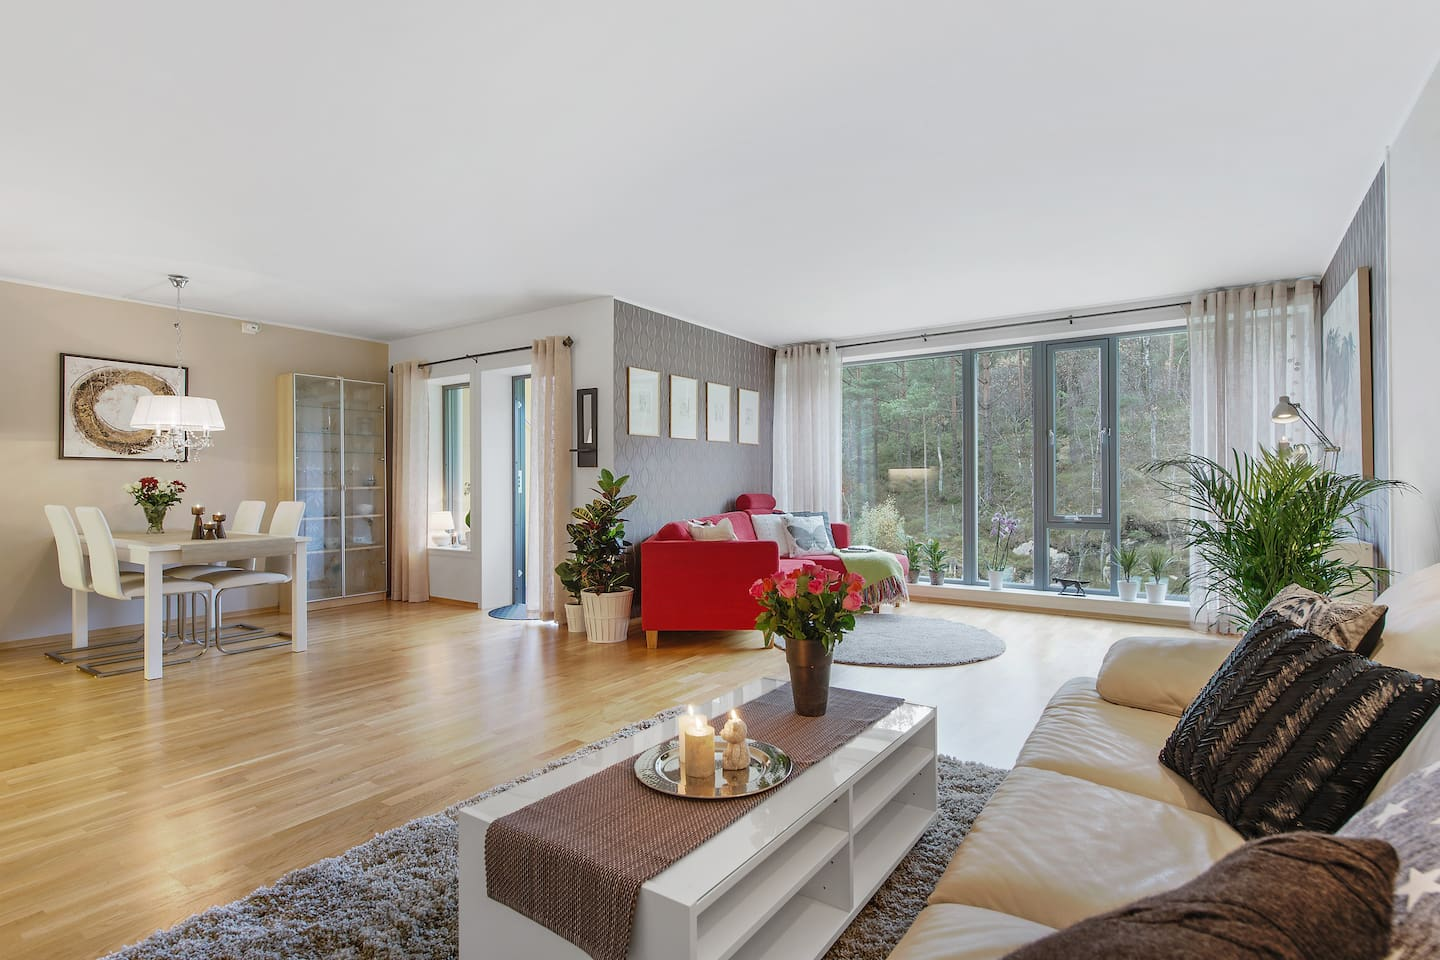 Enjoy the proximity to both city and nature in this modern apartment just minutes away from Bergen city center.